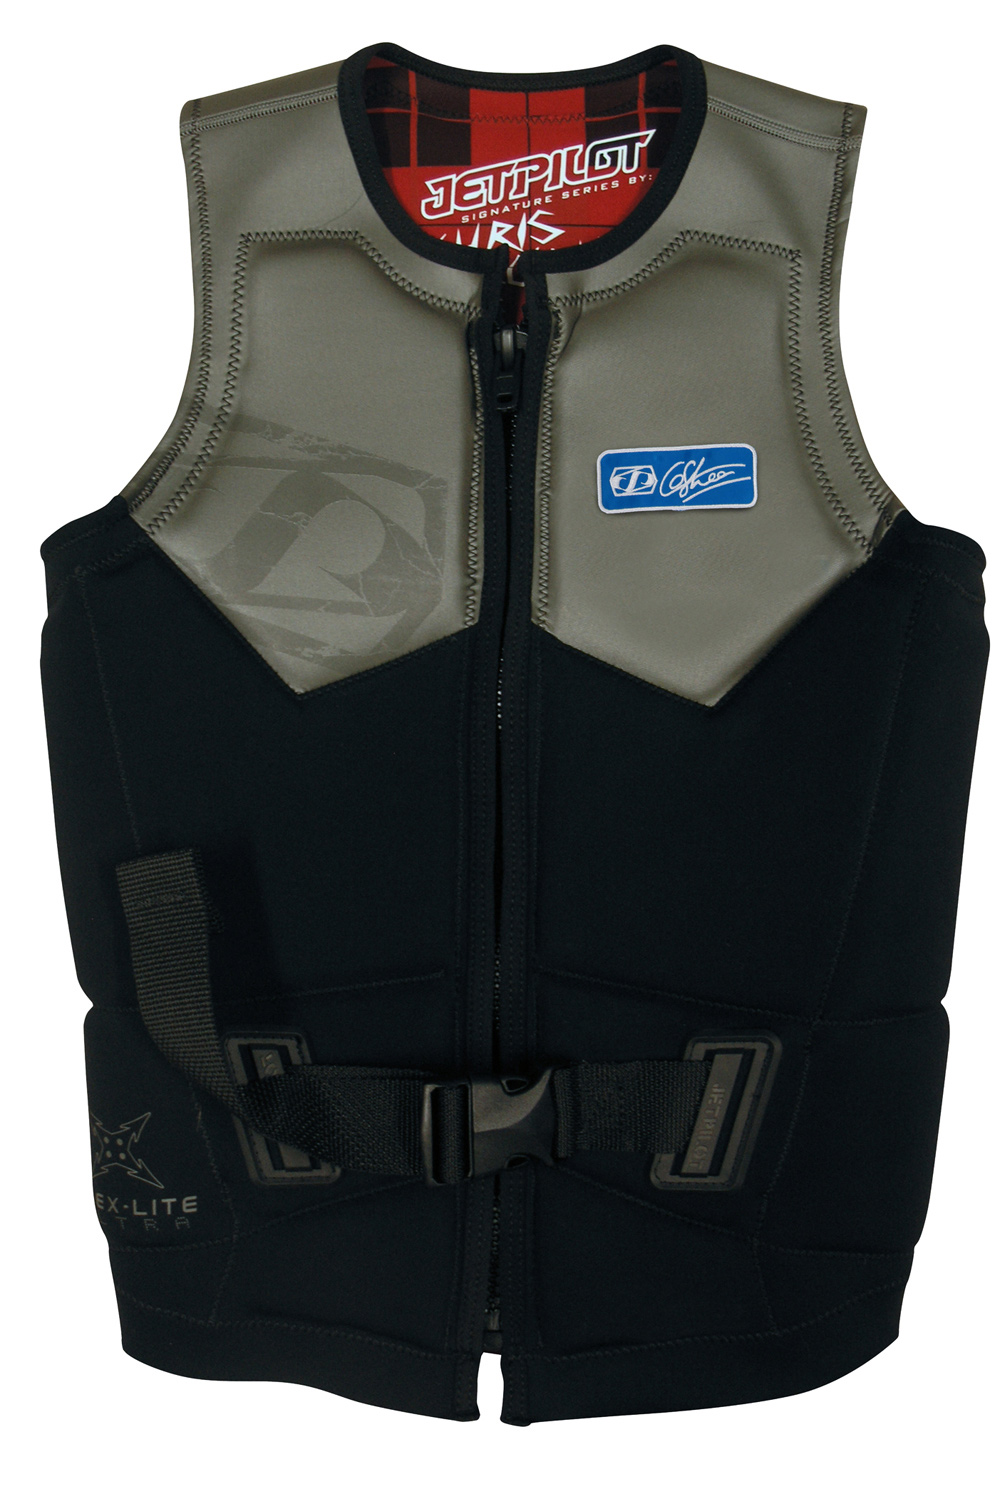 "Wake span style=""font-size: 13px; font-family: arial, sans, sans-serif"" Ditch the buckles and zip into the Jet Pilot Chris O'Shea Comp Wakeboard Vest. This neoprene vest is durable enough to handle all the water, sun and action you can drum up with spending your day out on the lake. The 100% flex-lite stretch panels make this vest easy to wear as it moves with you and won't restrict your range of motion. The design is lightweight so you won't feel bogged down. /span Key Features of the Jet Pilot Chris O'Shea Comp Wakeboard Vest: Chris Oshea's signature vest 100% Flex-Lite stretch panels Super Lightweight design for comfort and fit PVC Form core Custom Flannel print lining Glide skin upper panels for extra comfort - $91.95"